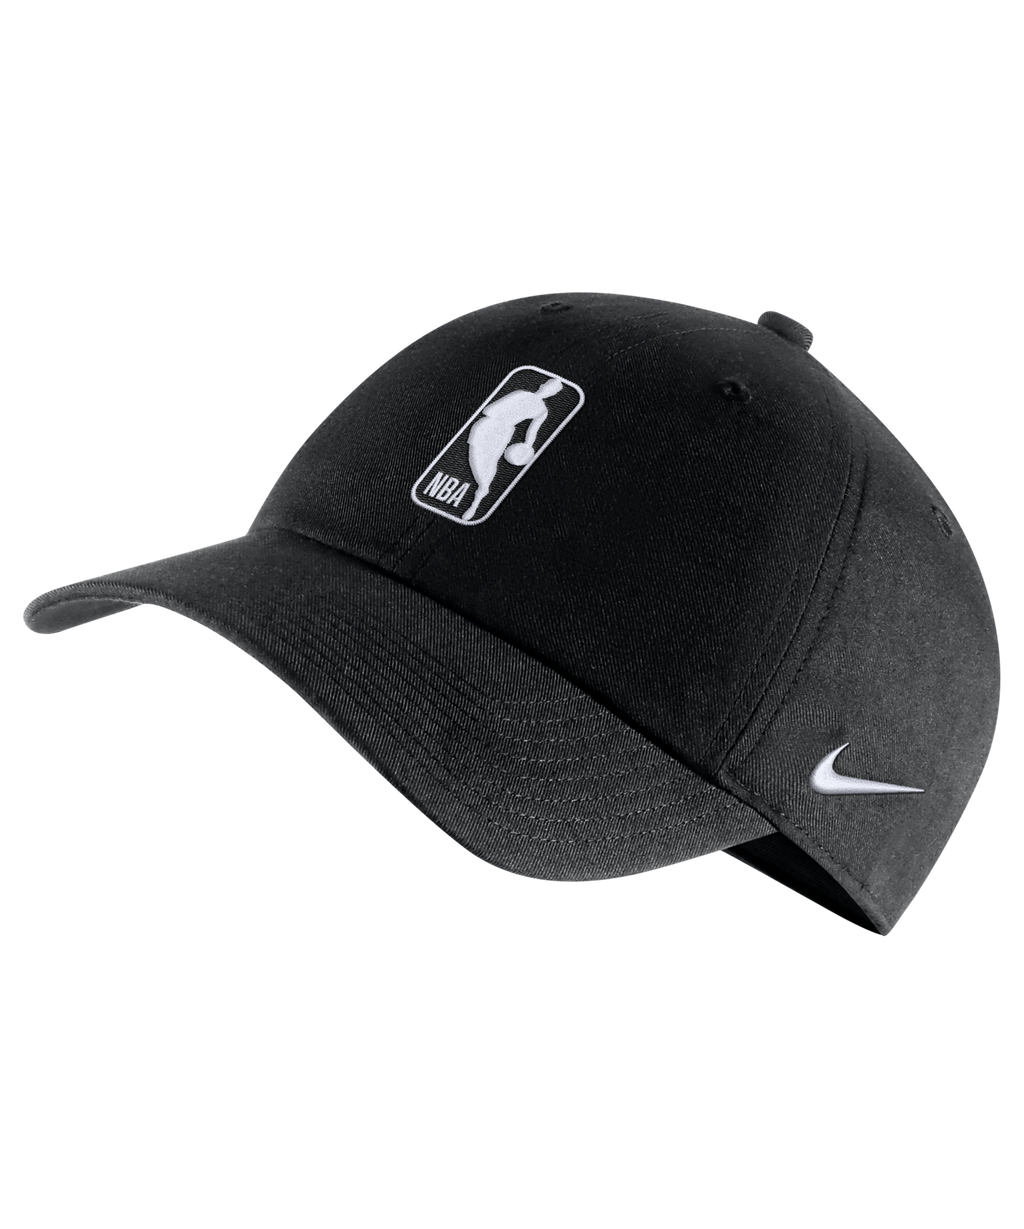 Nike Heritage 86 Swoosh Team 31 NBA Cap Black